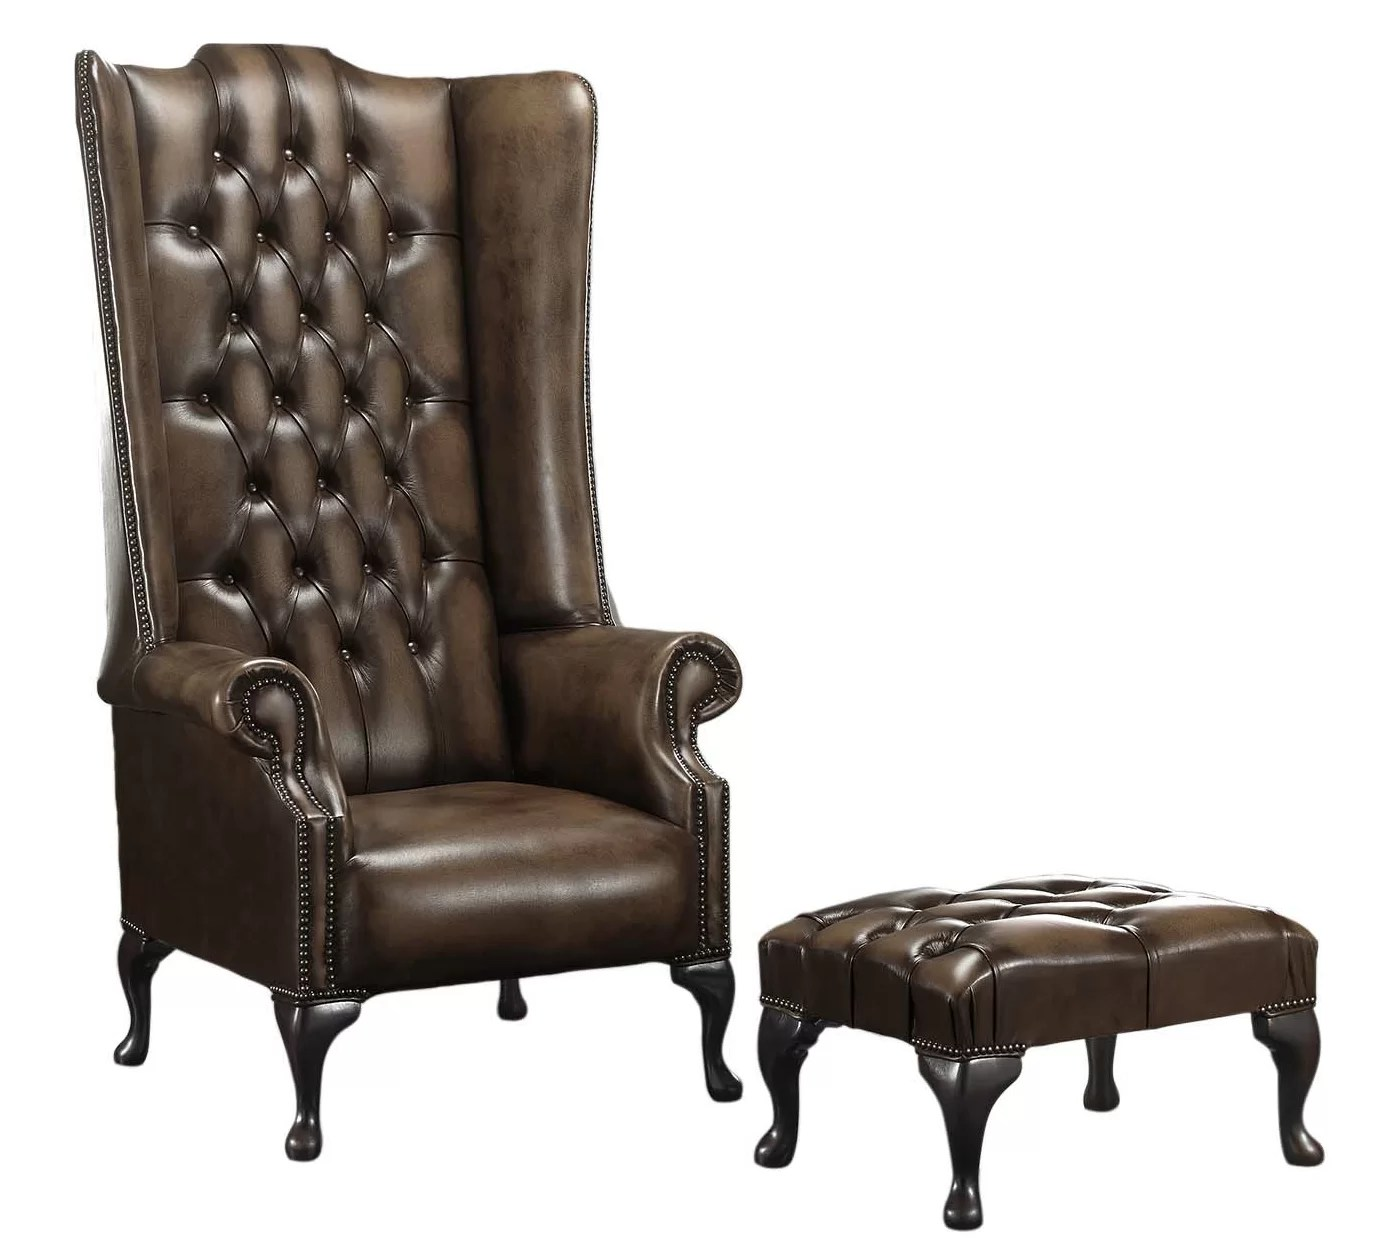 Chesterfield Sessel Chesterfield Sessel Barlet Mit Hocker